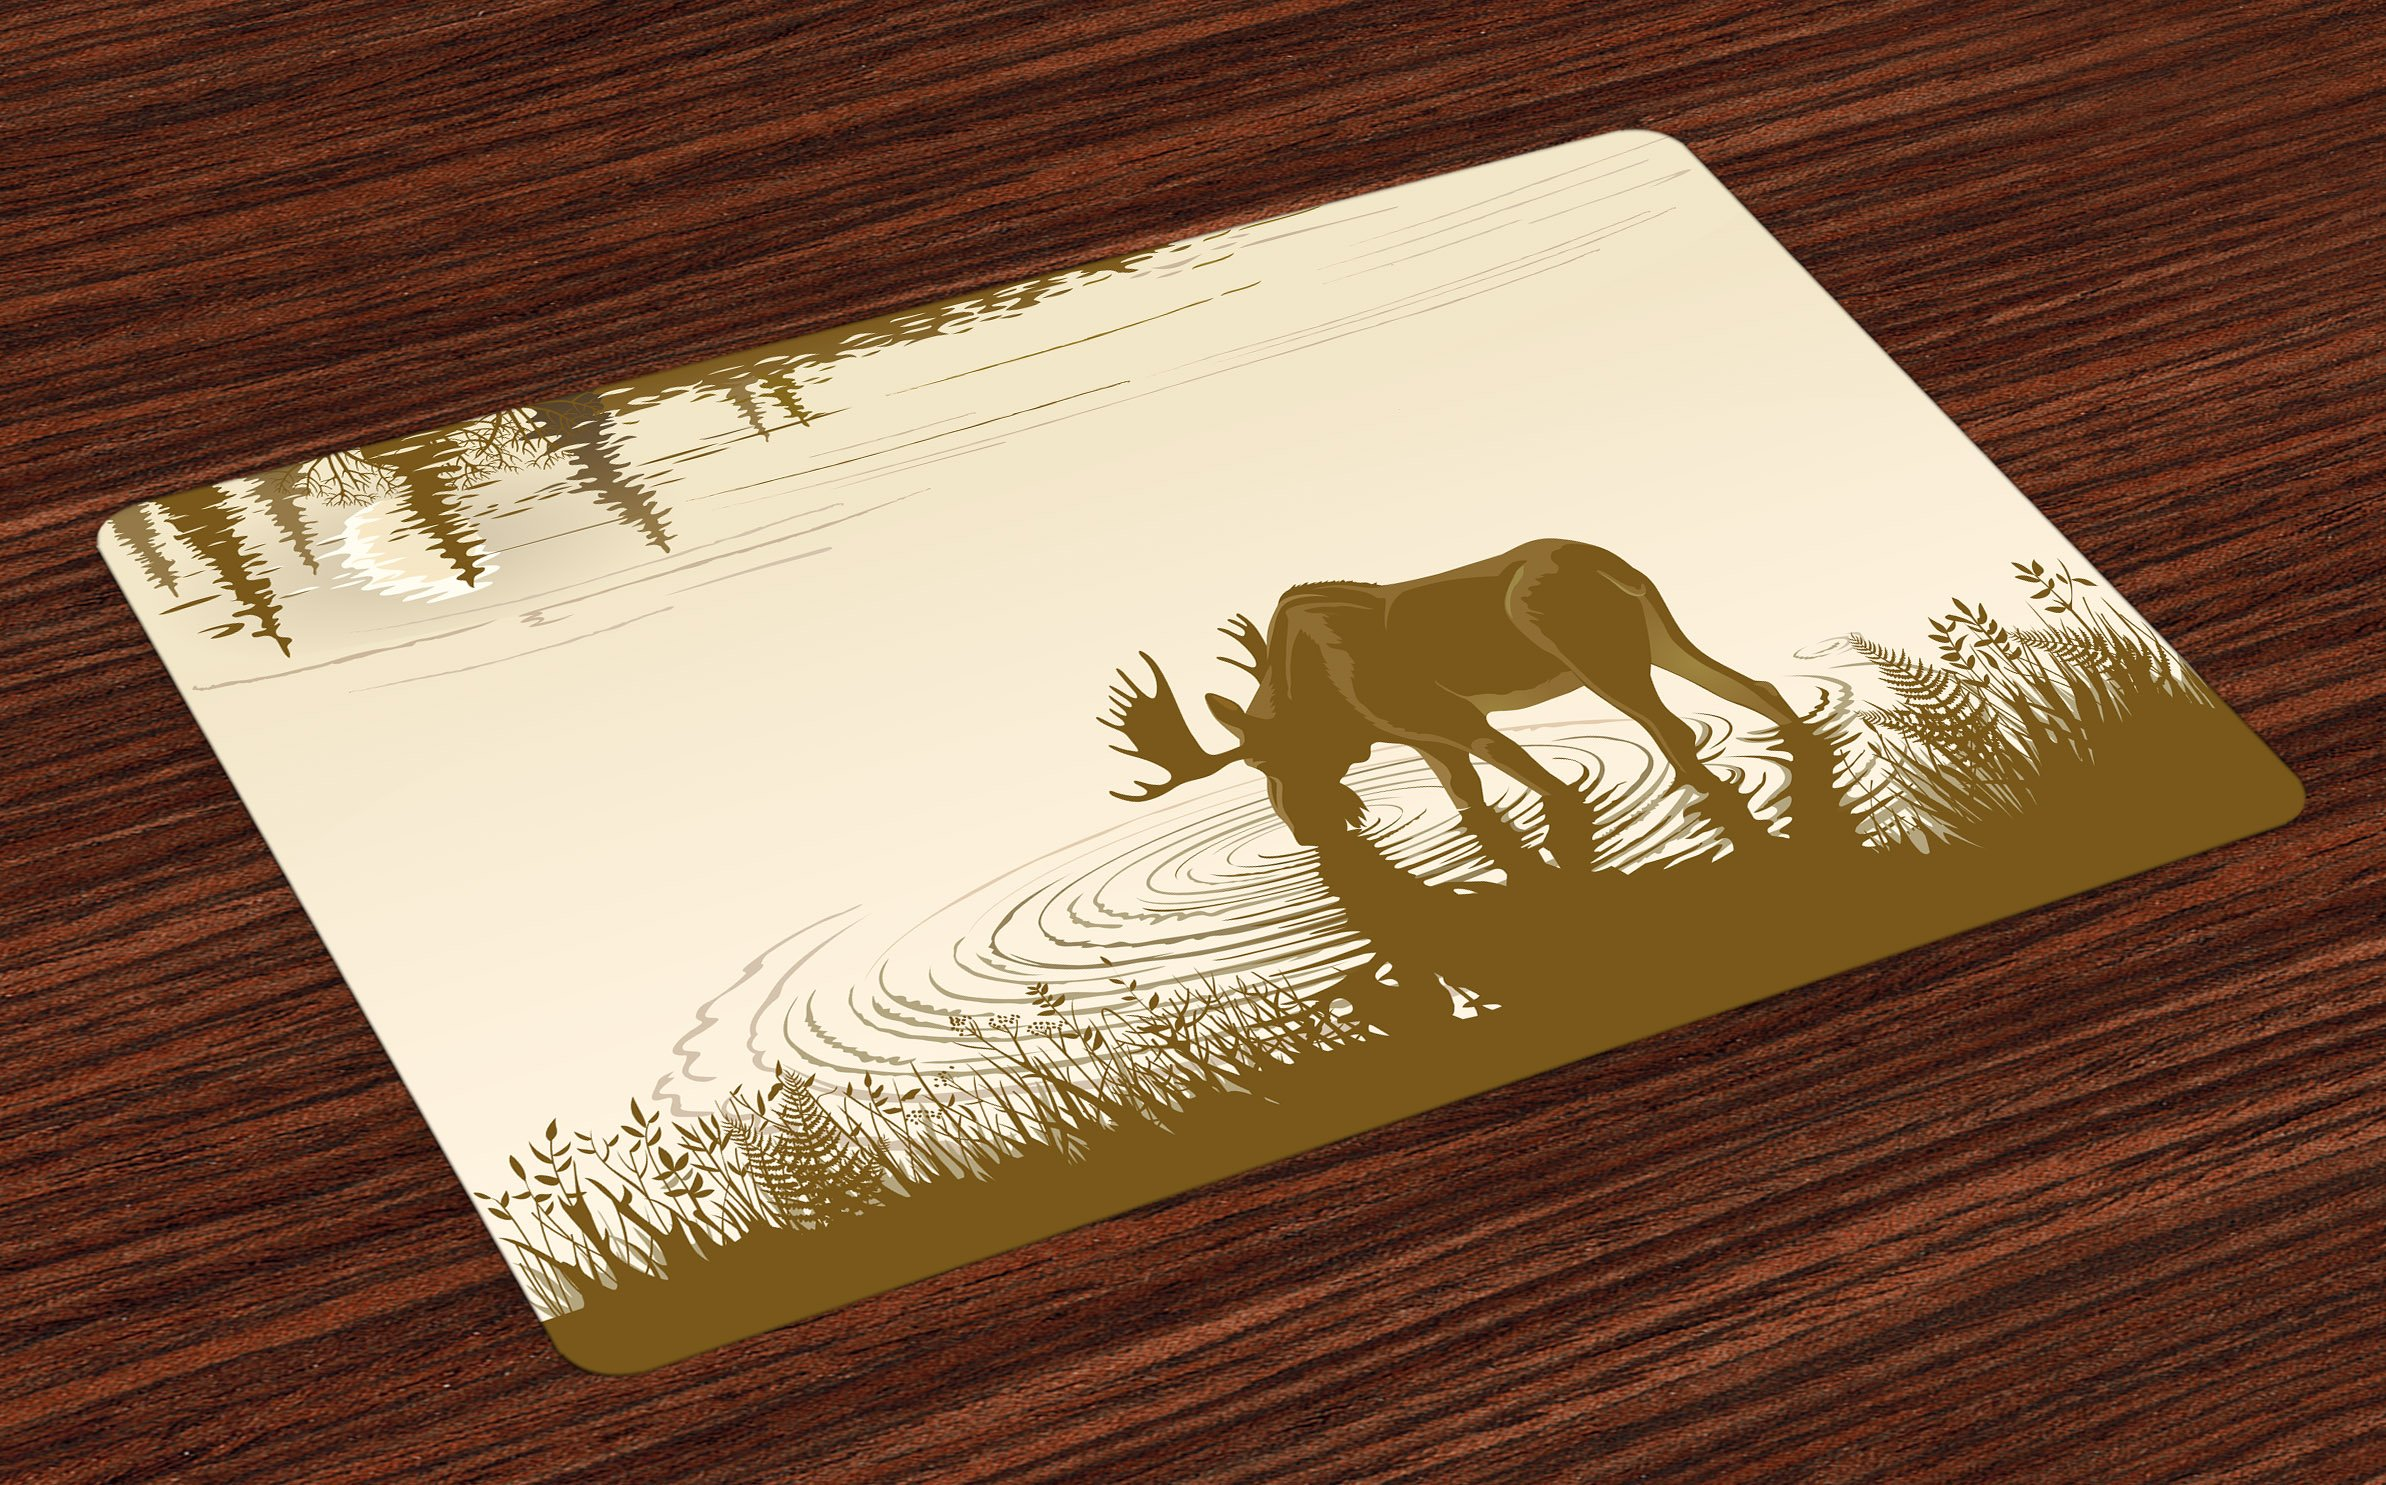 Ambesonne Animal Place Mats Set of 4, Silhouette of Elk Drinking Water in Lake River Forest Wildlife Scenery Illustration, Washable Fabric Placemats for Dining Room Kitchen Table Decor, Cream Sepia